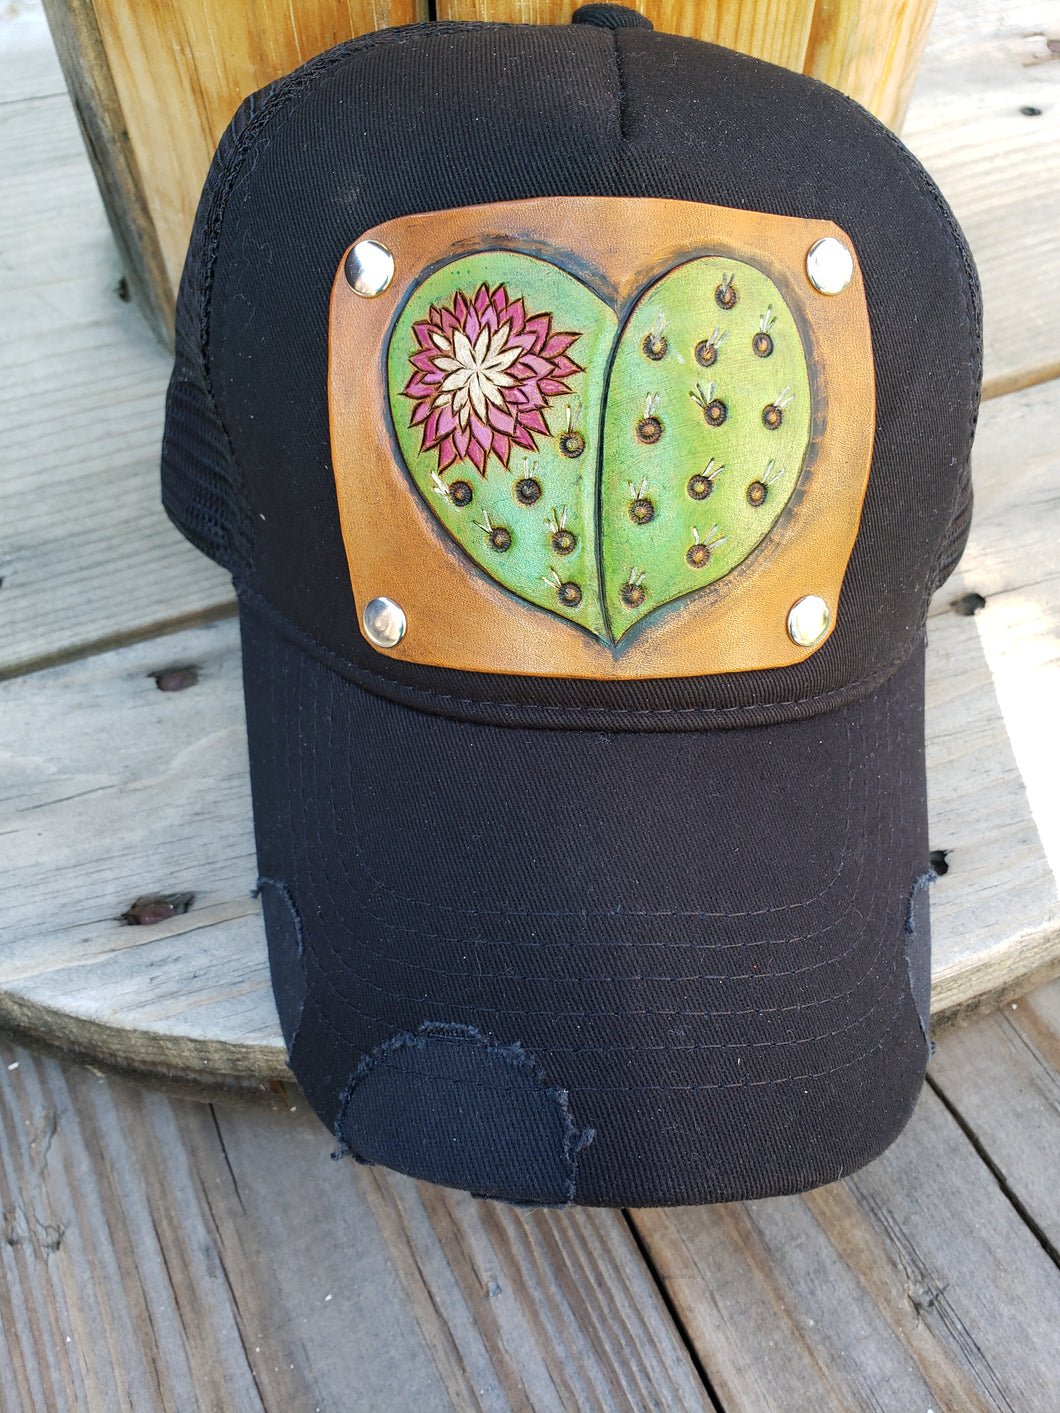 Cactus heart tooled leather hat